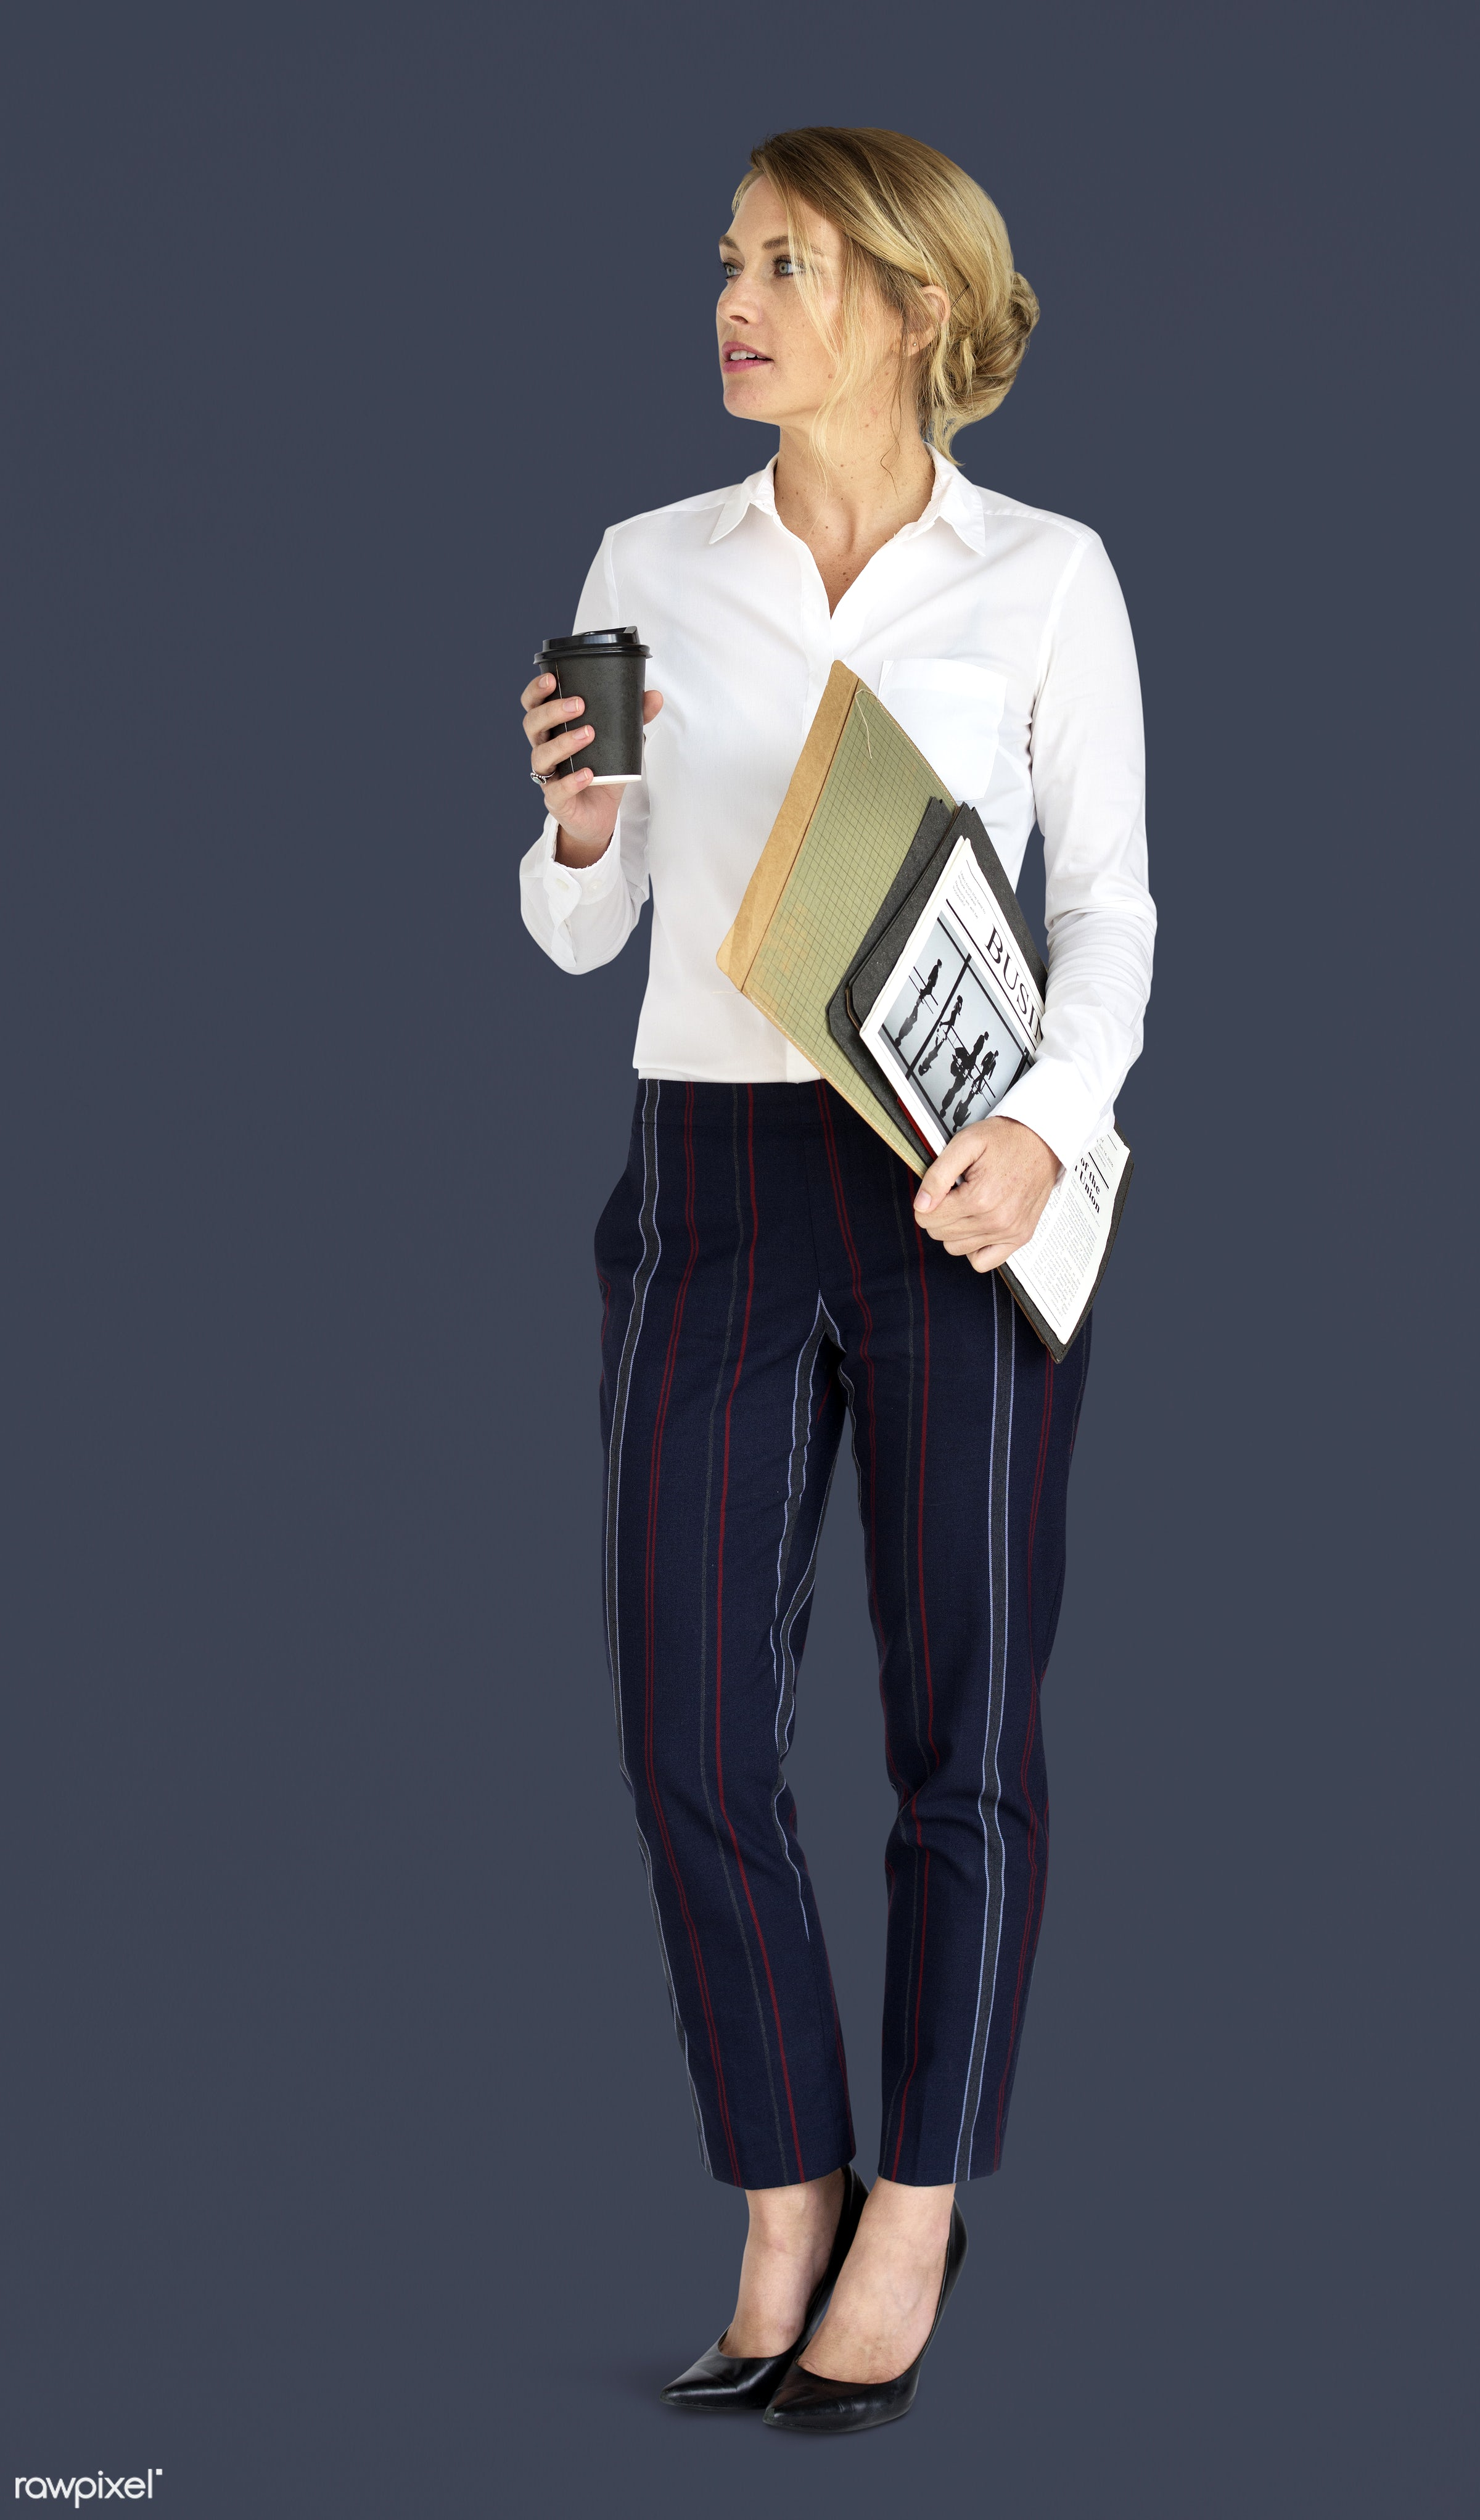 expression, studio, person, business newspaper, business wear, folders, people, formal dressing, business, caucasian, girl,...